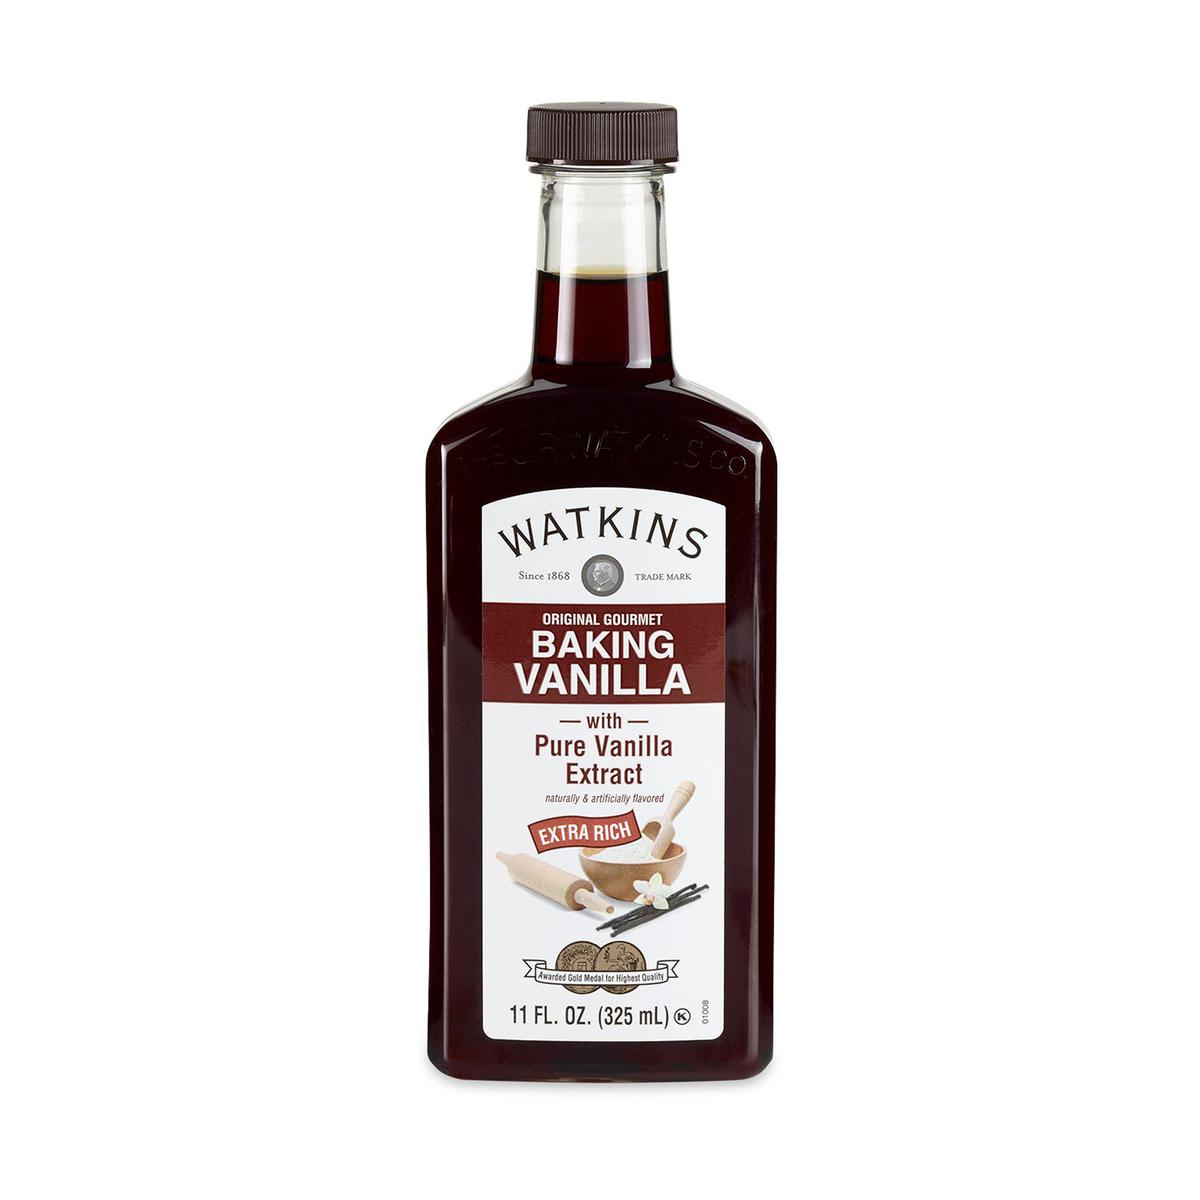 photo of vanilla extract